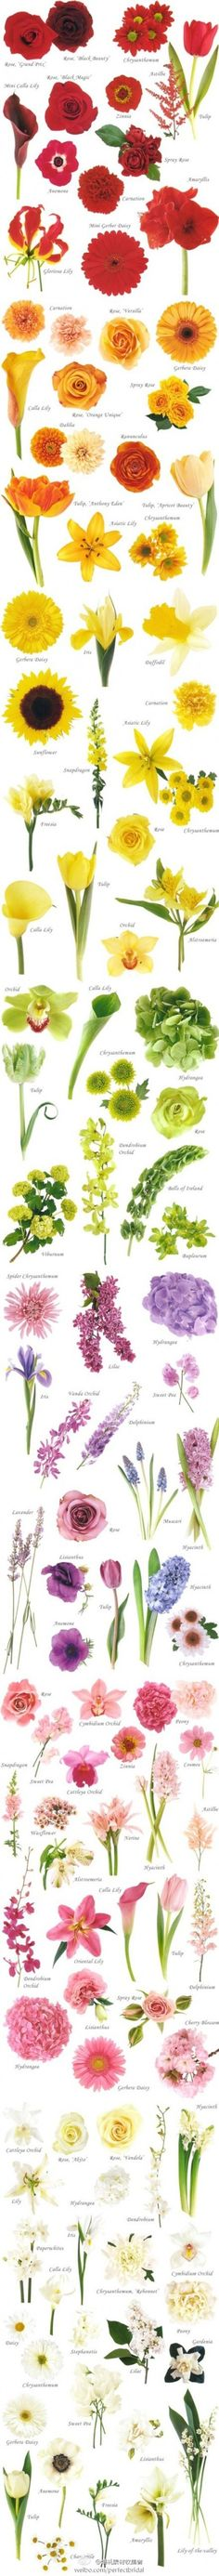 Flower Names, By Color